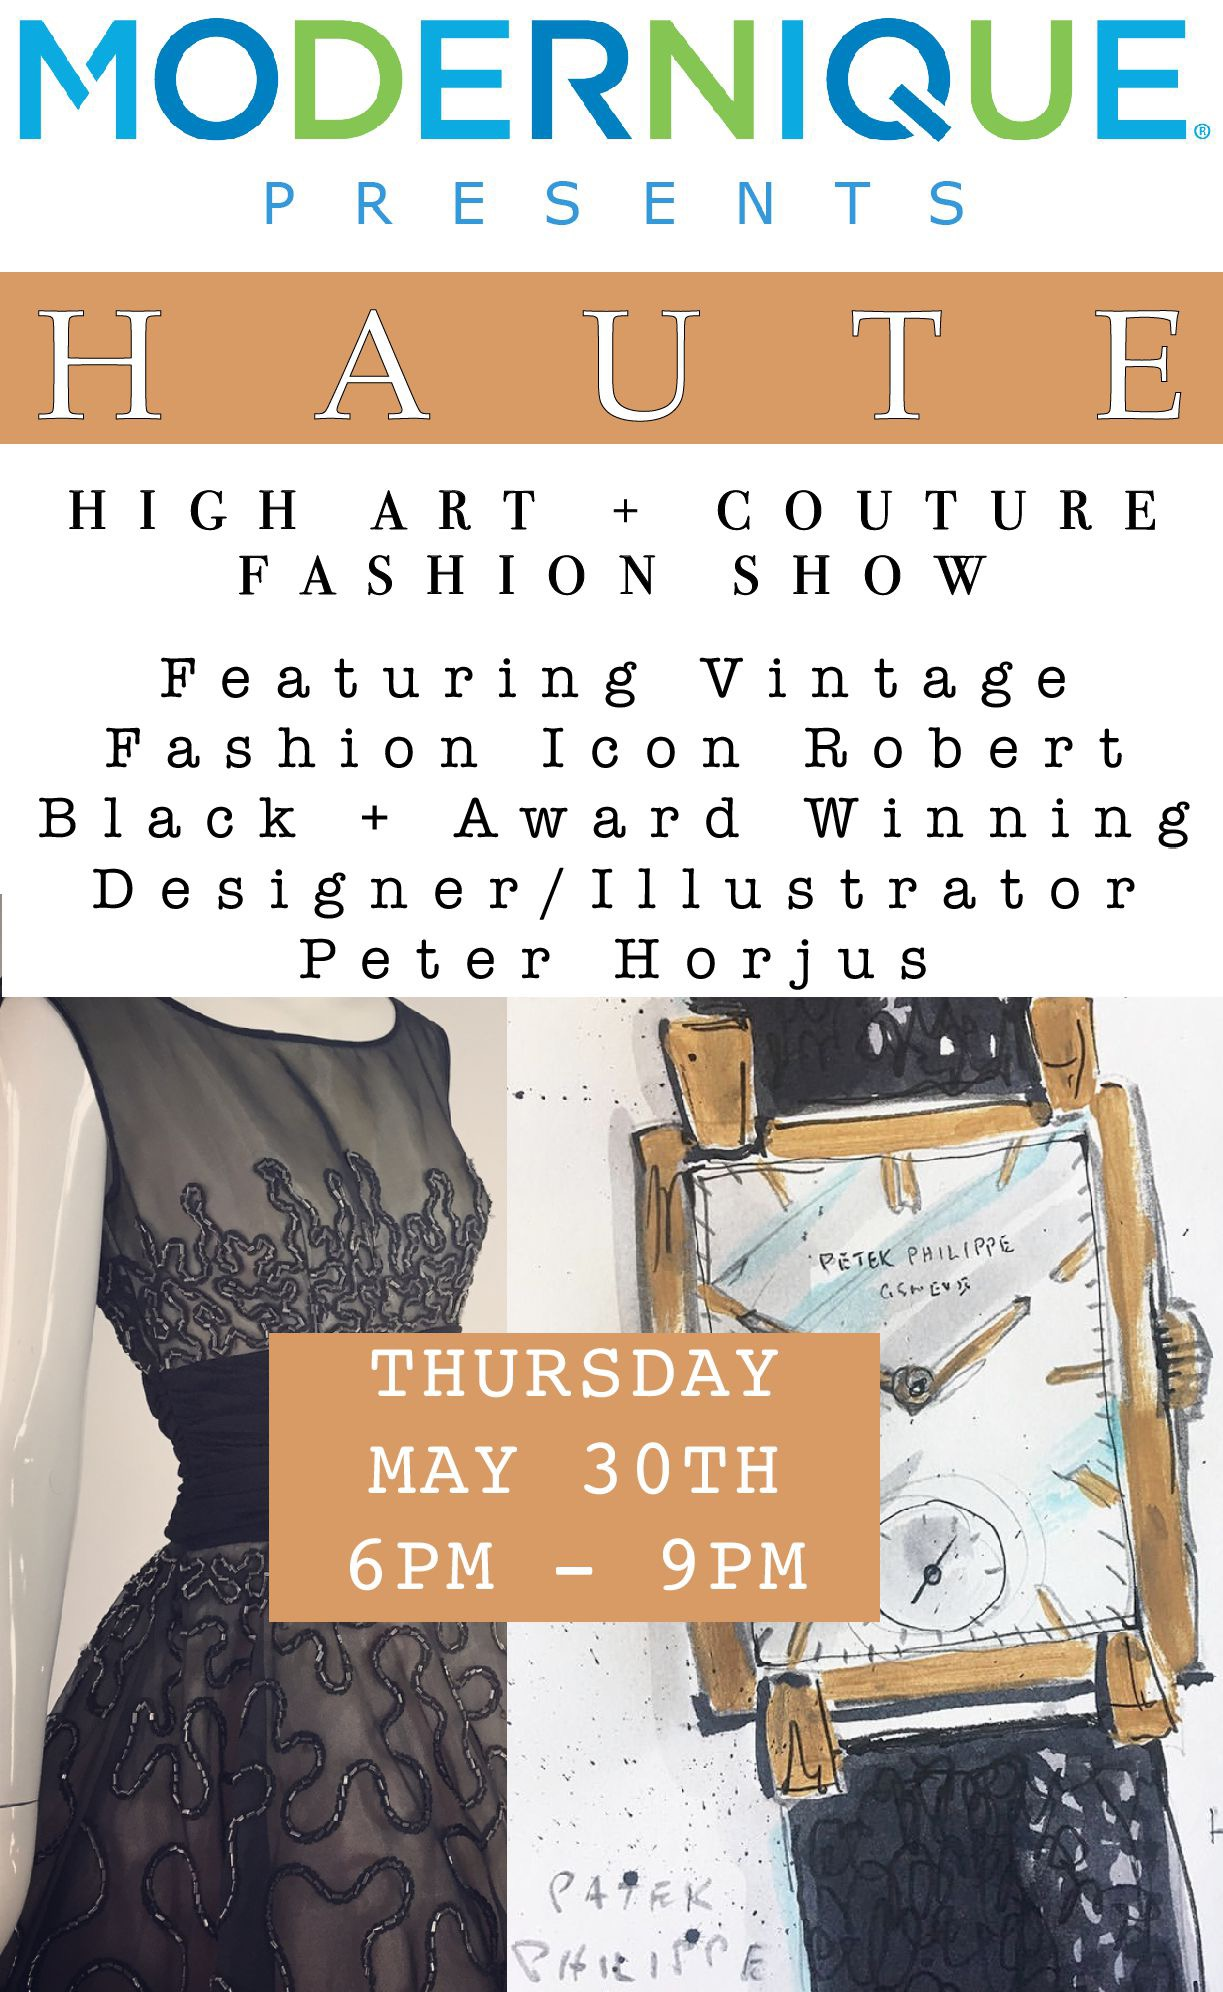 HAUTE - HIGH ART + COUTURE FASHION SHOW